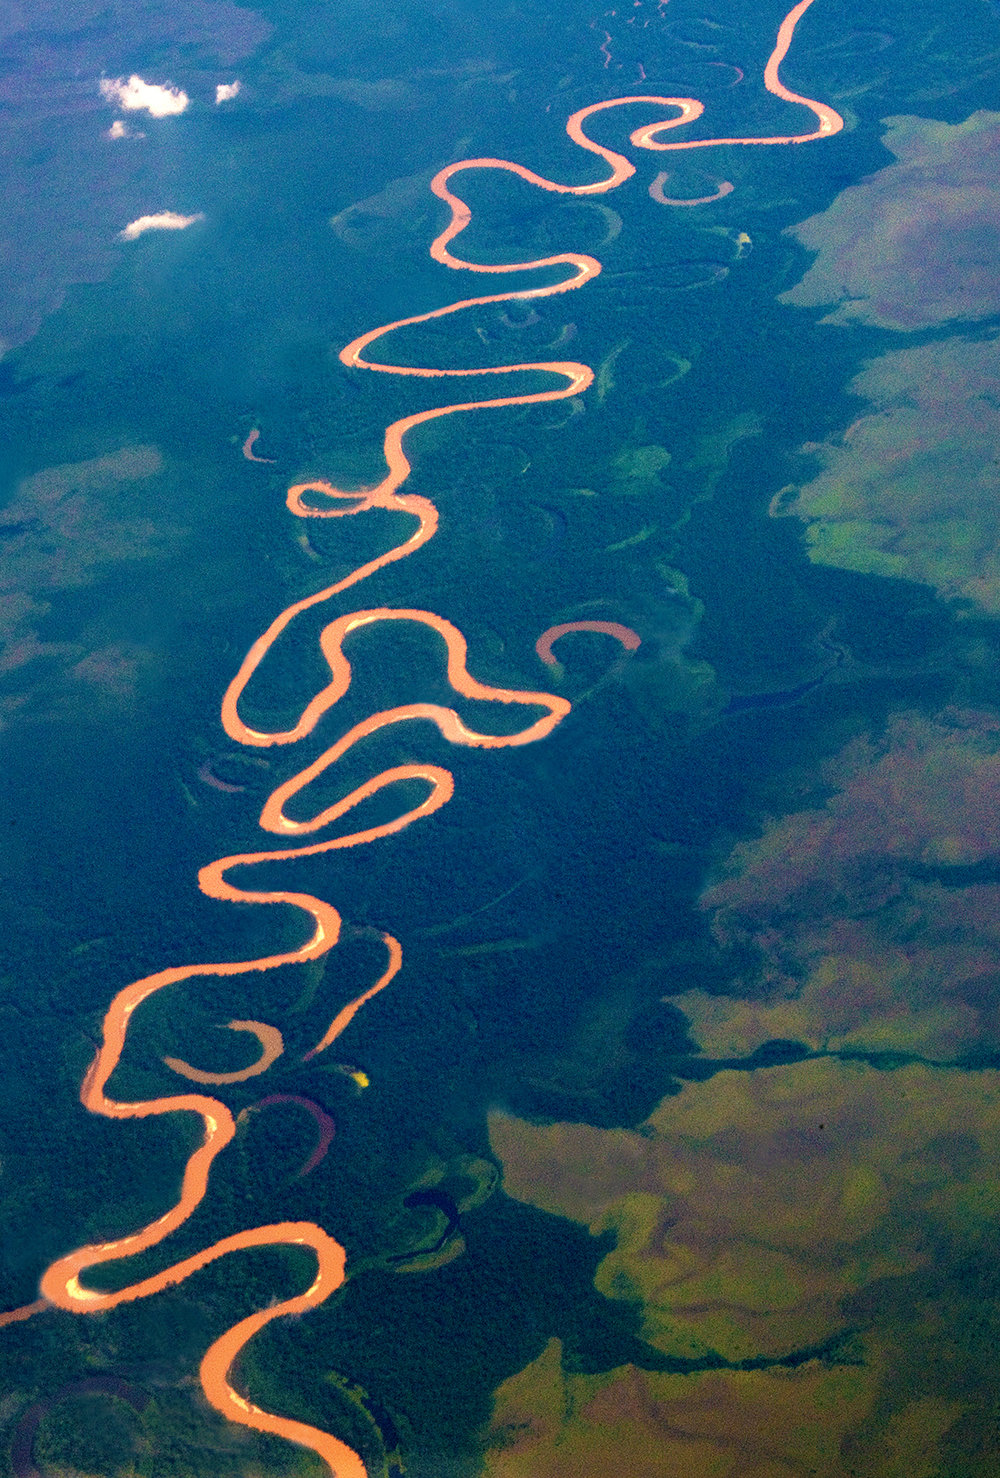 "Flying over the Amazon Rainforest is an experience that will leave you in sheer awe, and will inspire you to better understand and appreciate the importance of this critical Earth ecosystem. Housing over 16,000 different tree species and over 40.000 plant species, the Amazon is the terrestrial ""lungs of our planet"". It produces 20% of Earth's oxygen while absorbing and storing more carbon dioxide than any other terrestrial ecosystem on our planet. It is home to over 10% of all Earth's known species and 25% of the world's medicinal plants, while producing 25% of the planet's fresh river water. While deforestation in 2012 had been slowed to its lowest point in 25 years due to spirited conservation efforts, it has been on the rise again in recent years, with 2016 seeing a 75% increase in Amazon deforestation from its 2012 level. Overall, more than 20% of the Amazon Rainforest has been destroyed."